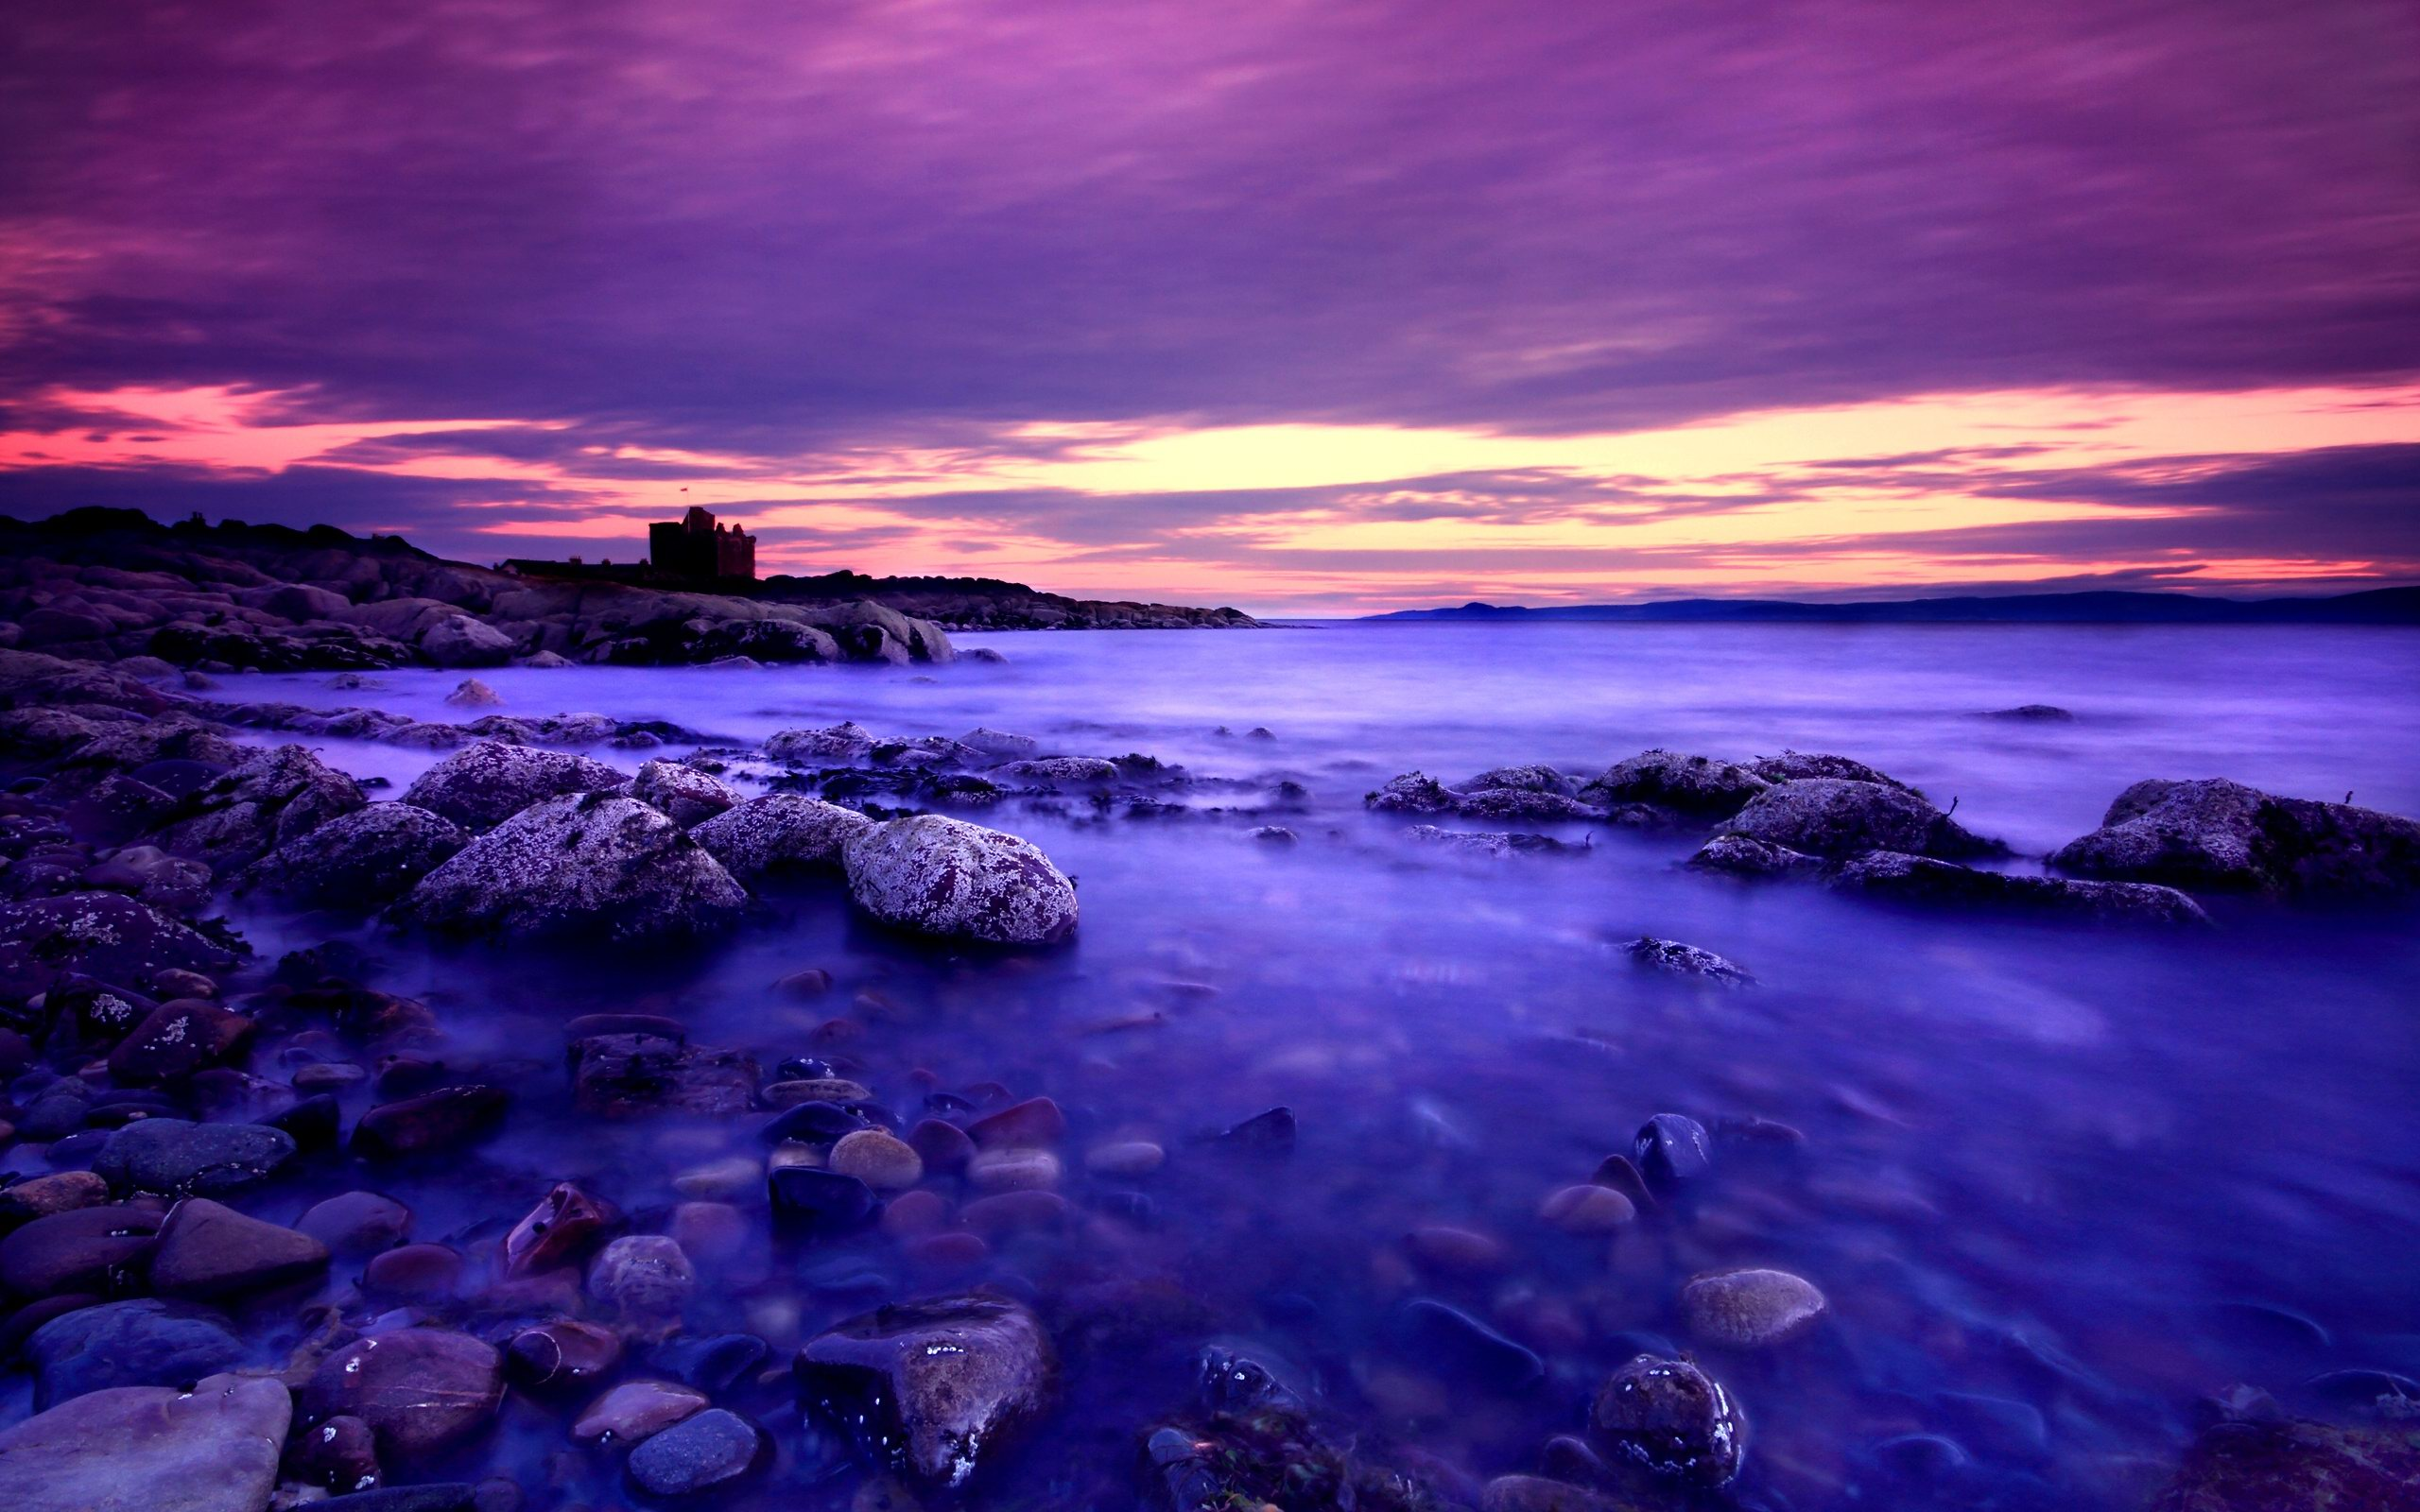 HD Purple Sunset 23188 1920x1080 px